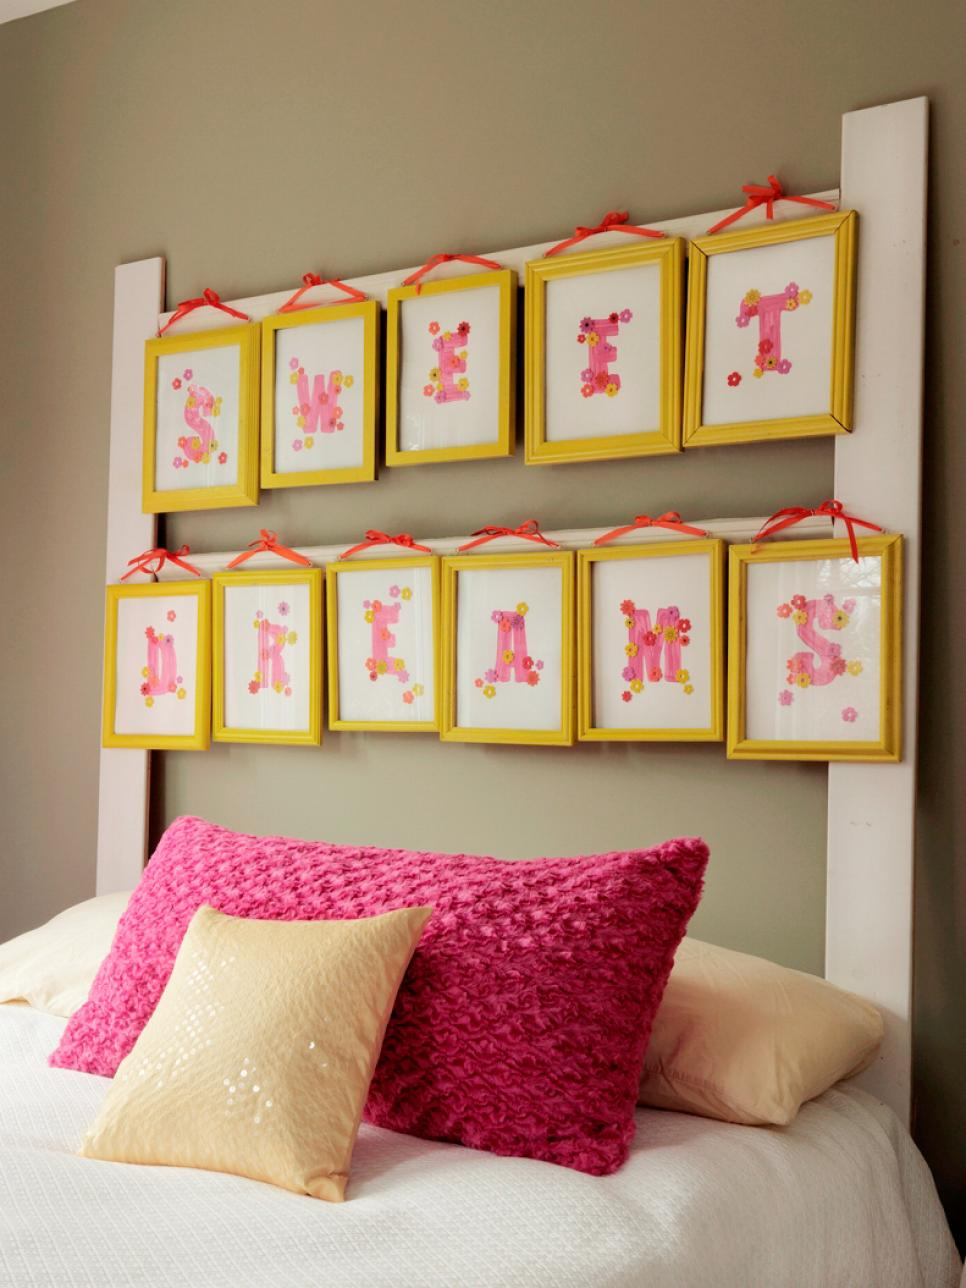 Easy Bed Headboard Ideas: 15 Easy DIY Headboards   DIY,